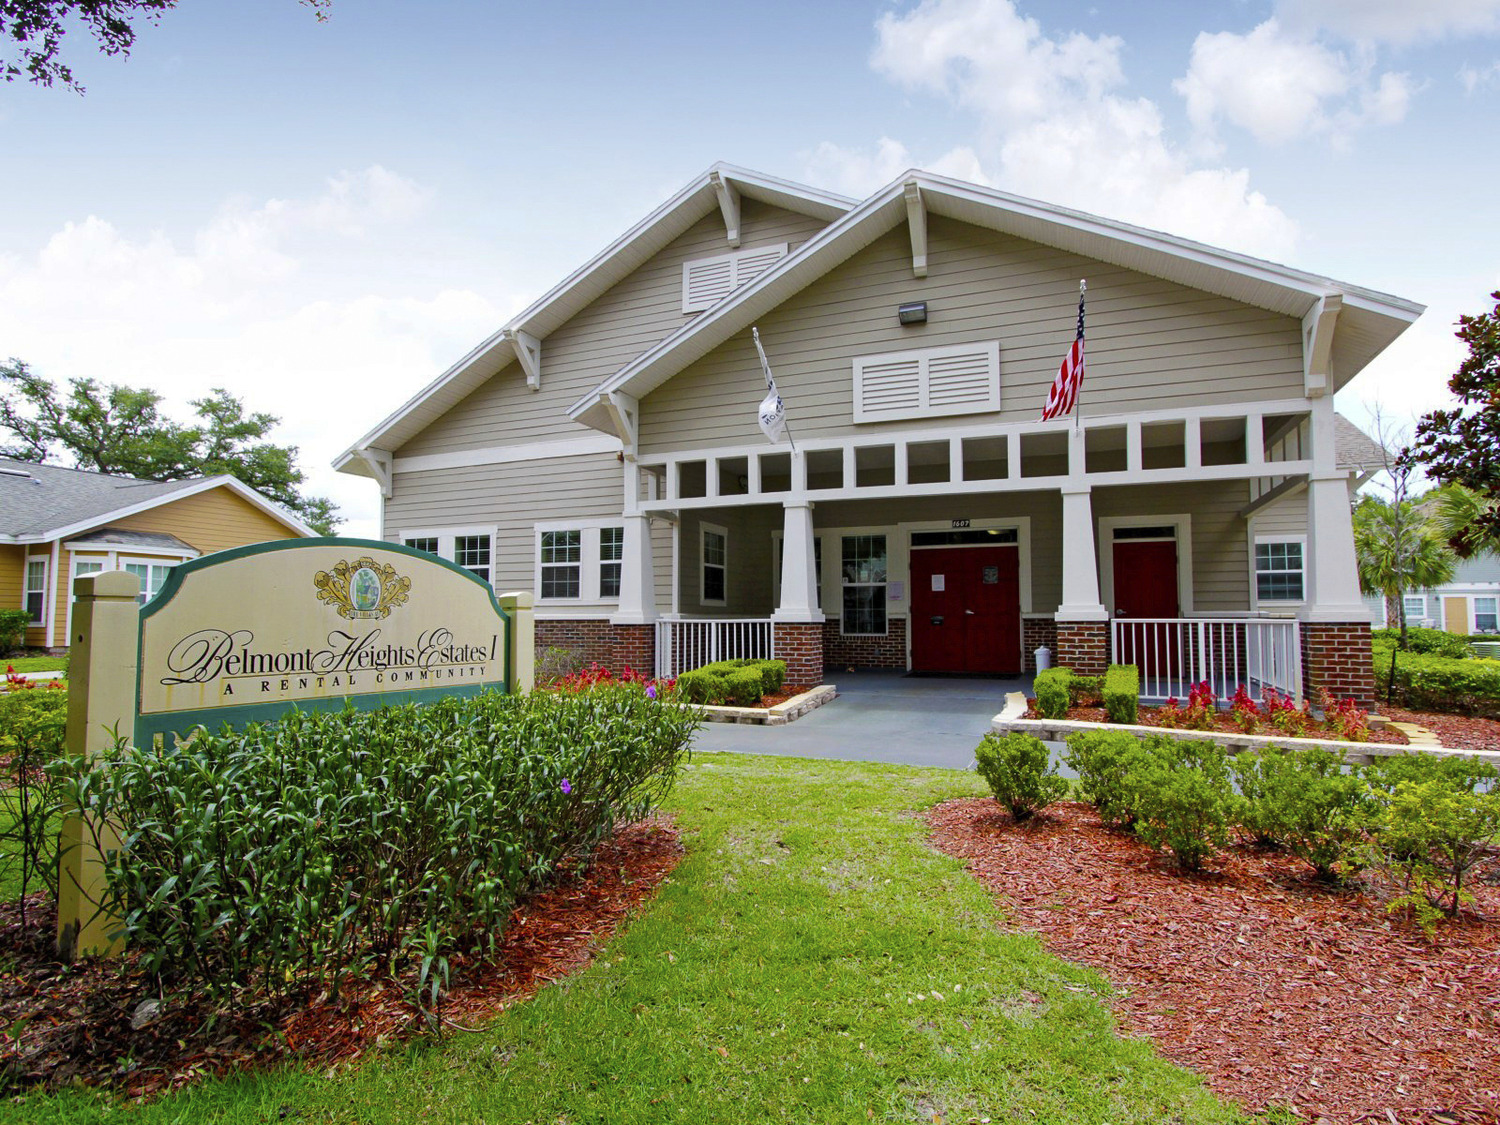 CBG builds Belmont Heights Estates Phase III, a 266-Unit Apartment Community - Hope VI Revitalization in Tampa, FL